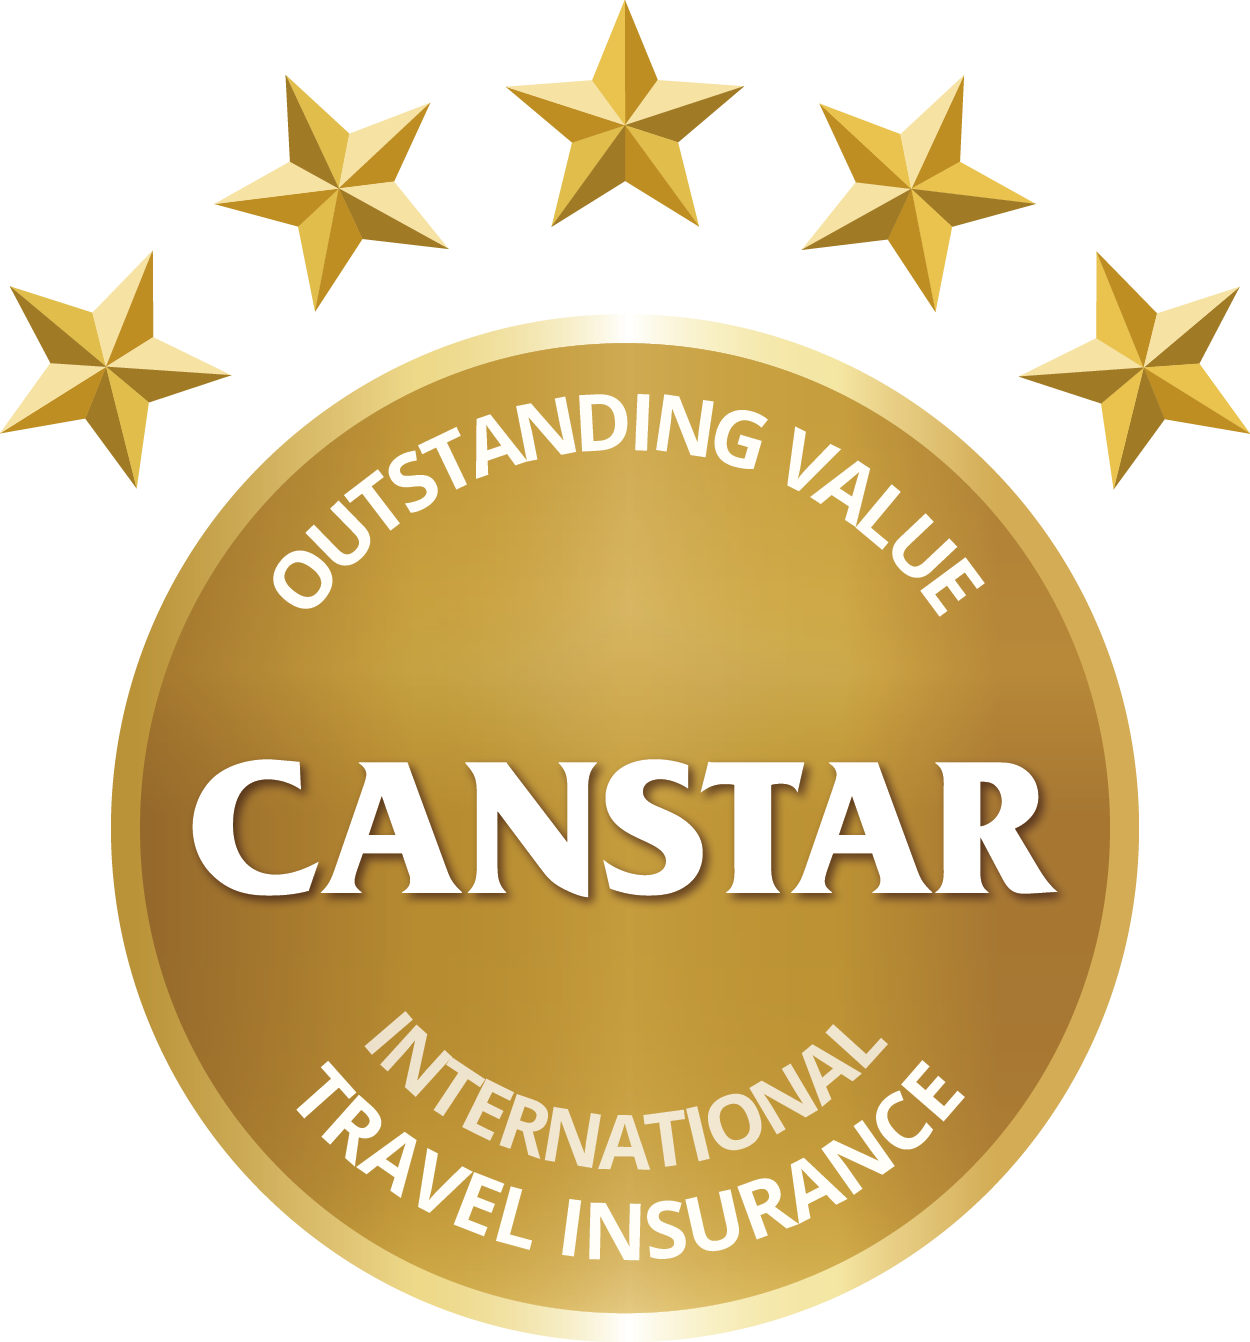 CANSTAR - Outstanding Value - International Travel Insurance